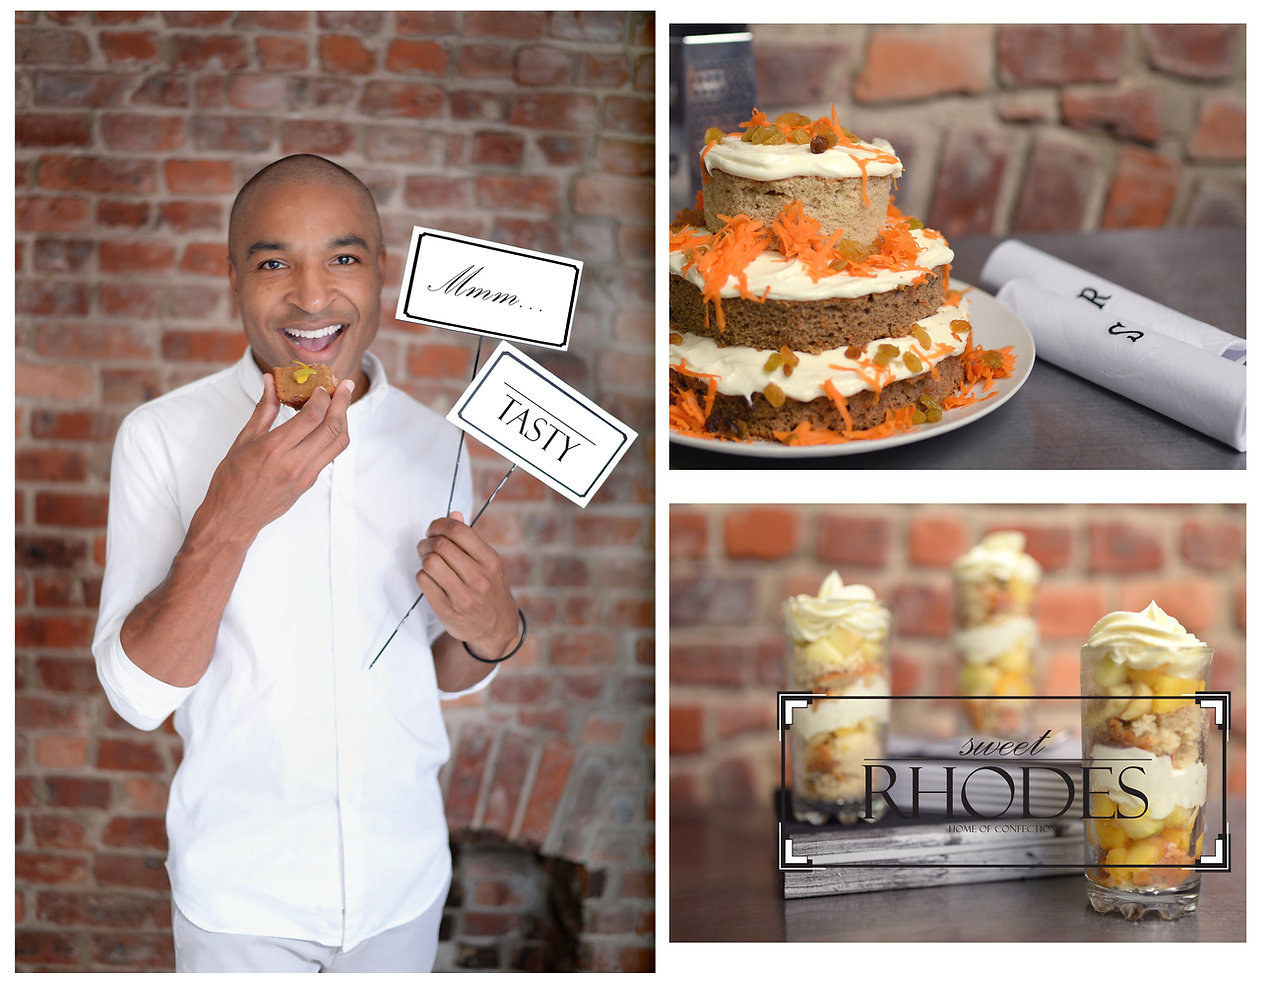 Business Promotional Photography